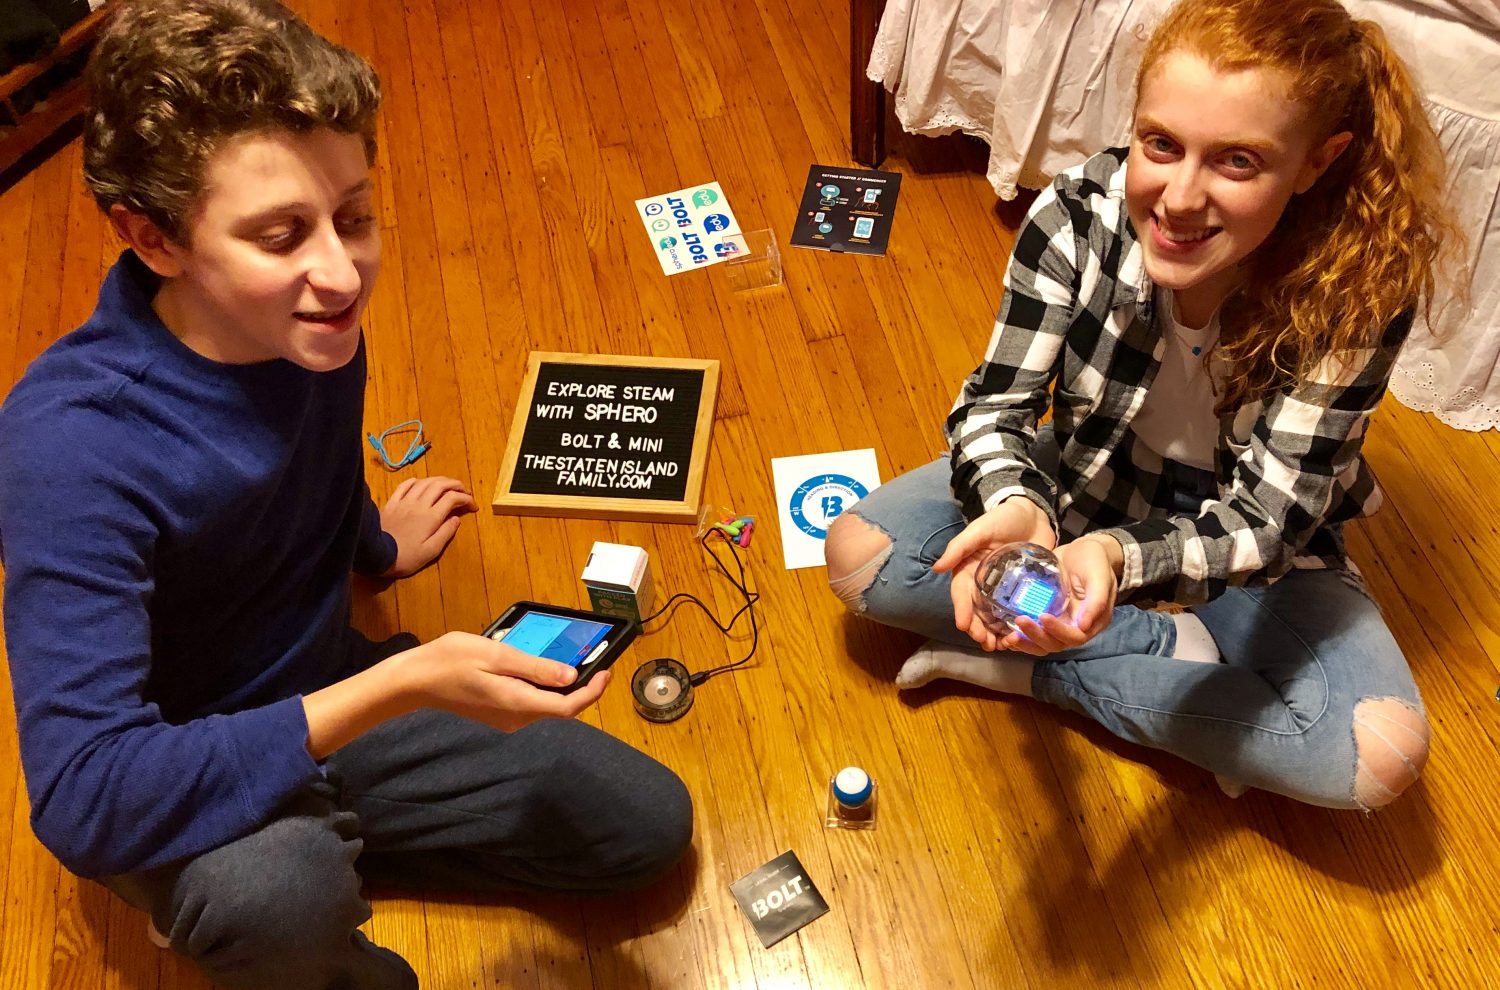 The STEAM Learning NEVER ends with Sphero BOLT and Sphero Mini